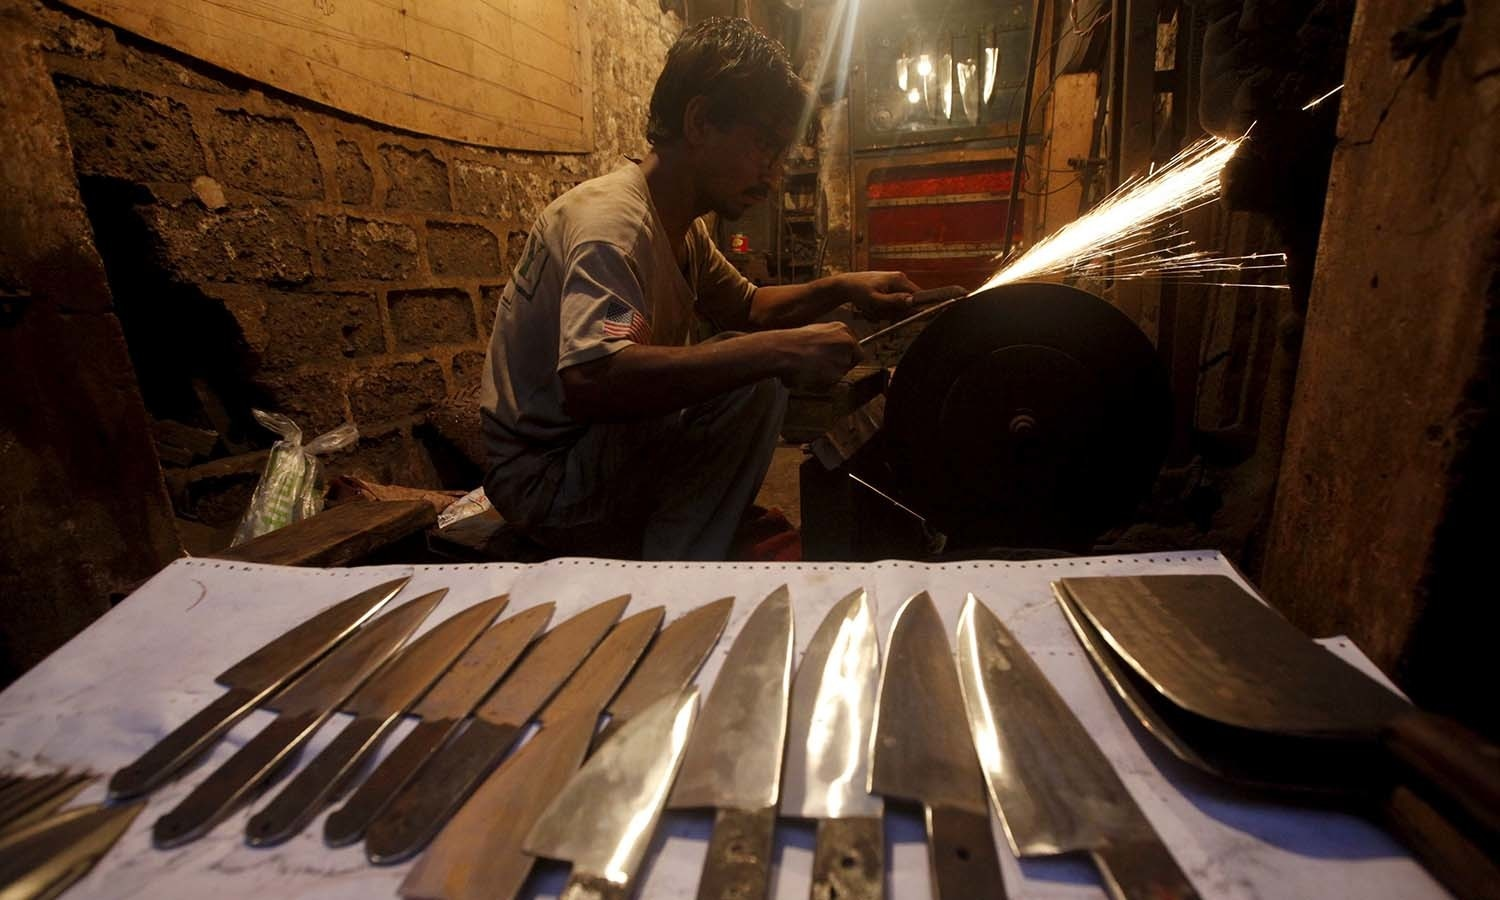 A man sharpens knives to be sold ahead of the Eidul Azha festival in Karachi. ─ Reuters